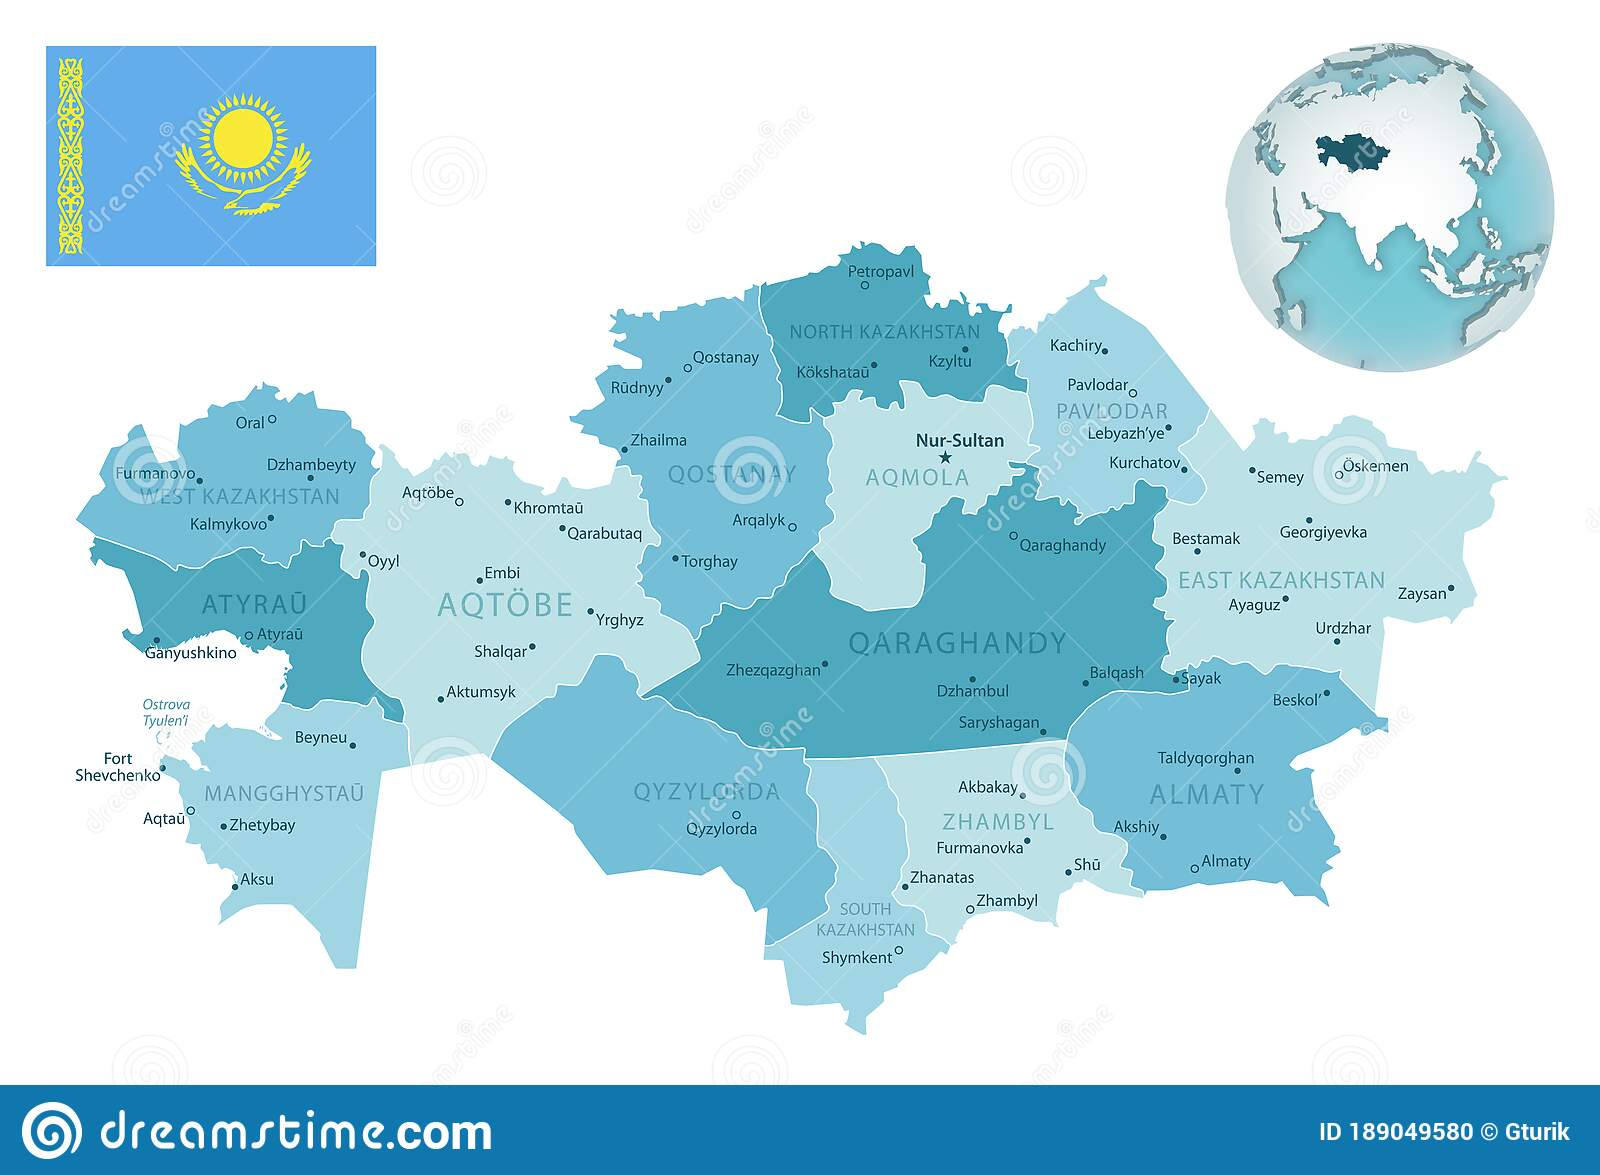 Picture of: Kazakhstan Country Map Stock Illustrations 2 991 Kazakhstan Country Map Stock Illustrations Vectors Clipart Dreamstime